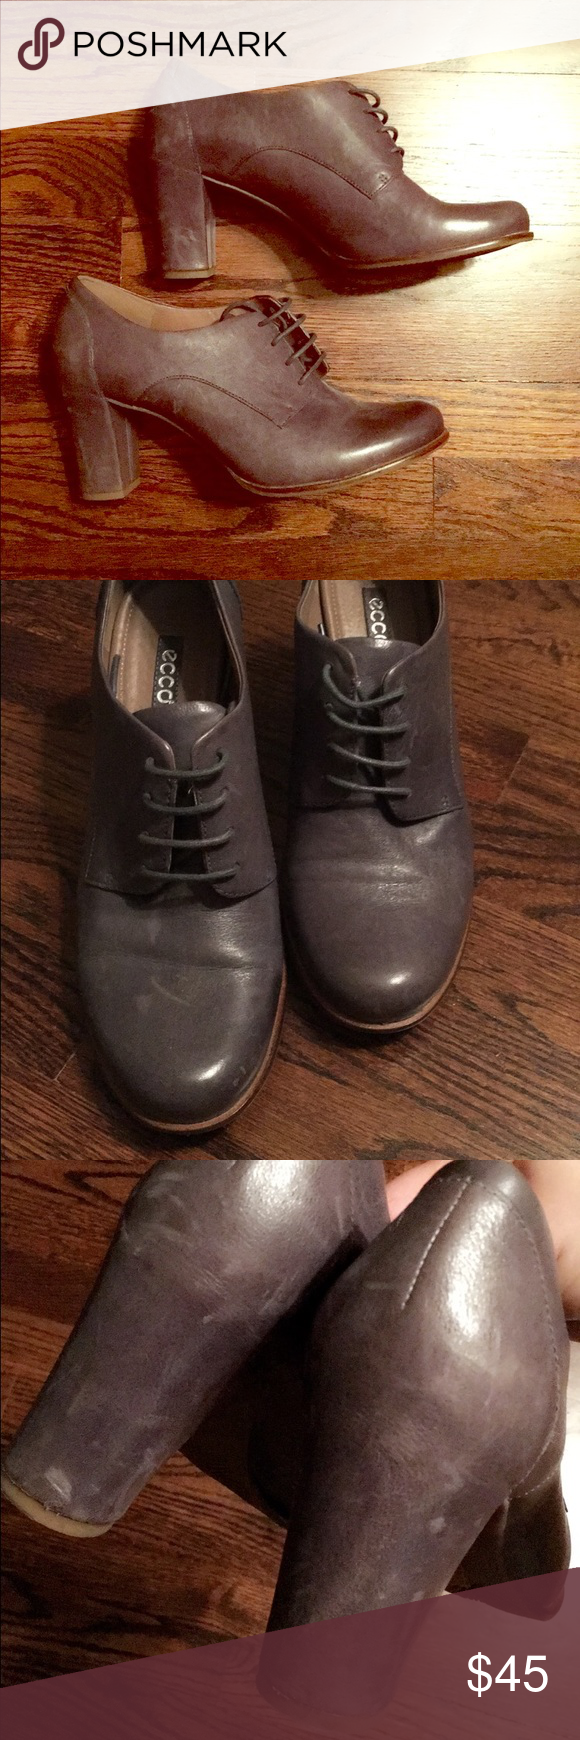 Supple Leather Grey/Blue Lace up Heels - Brand New Supple Leather Grey/Blue Lace up Heels - Brand New. Features a worn in leather look (intentional scratches etc). Chic, spot on trend, and timeless! Ecco Shoes Heels